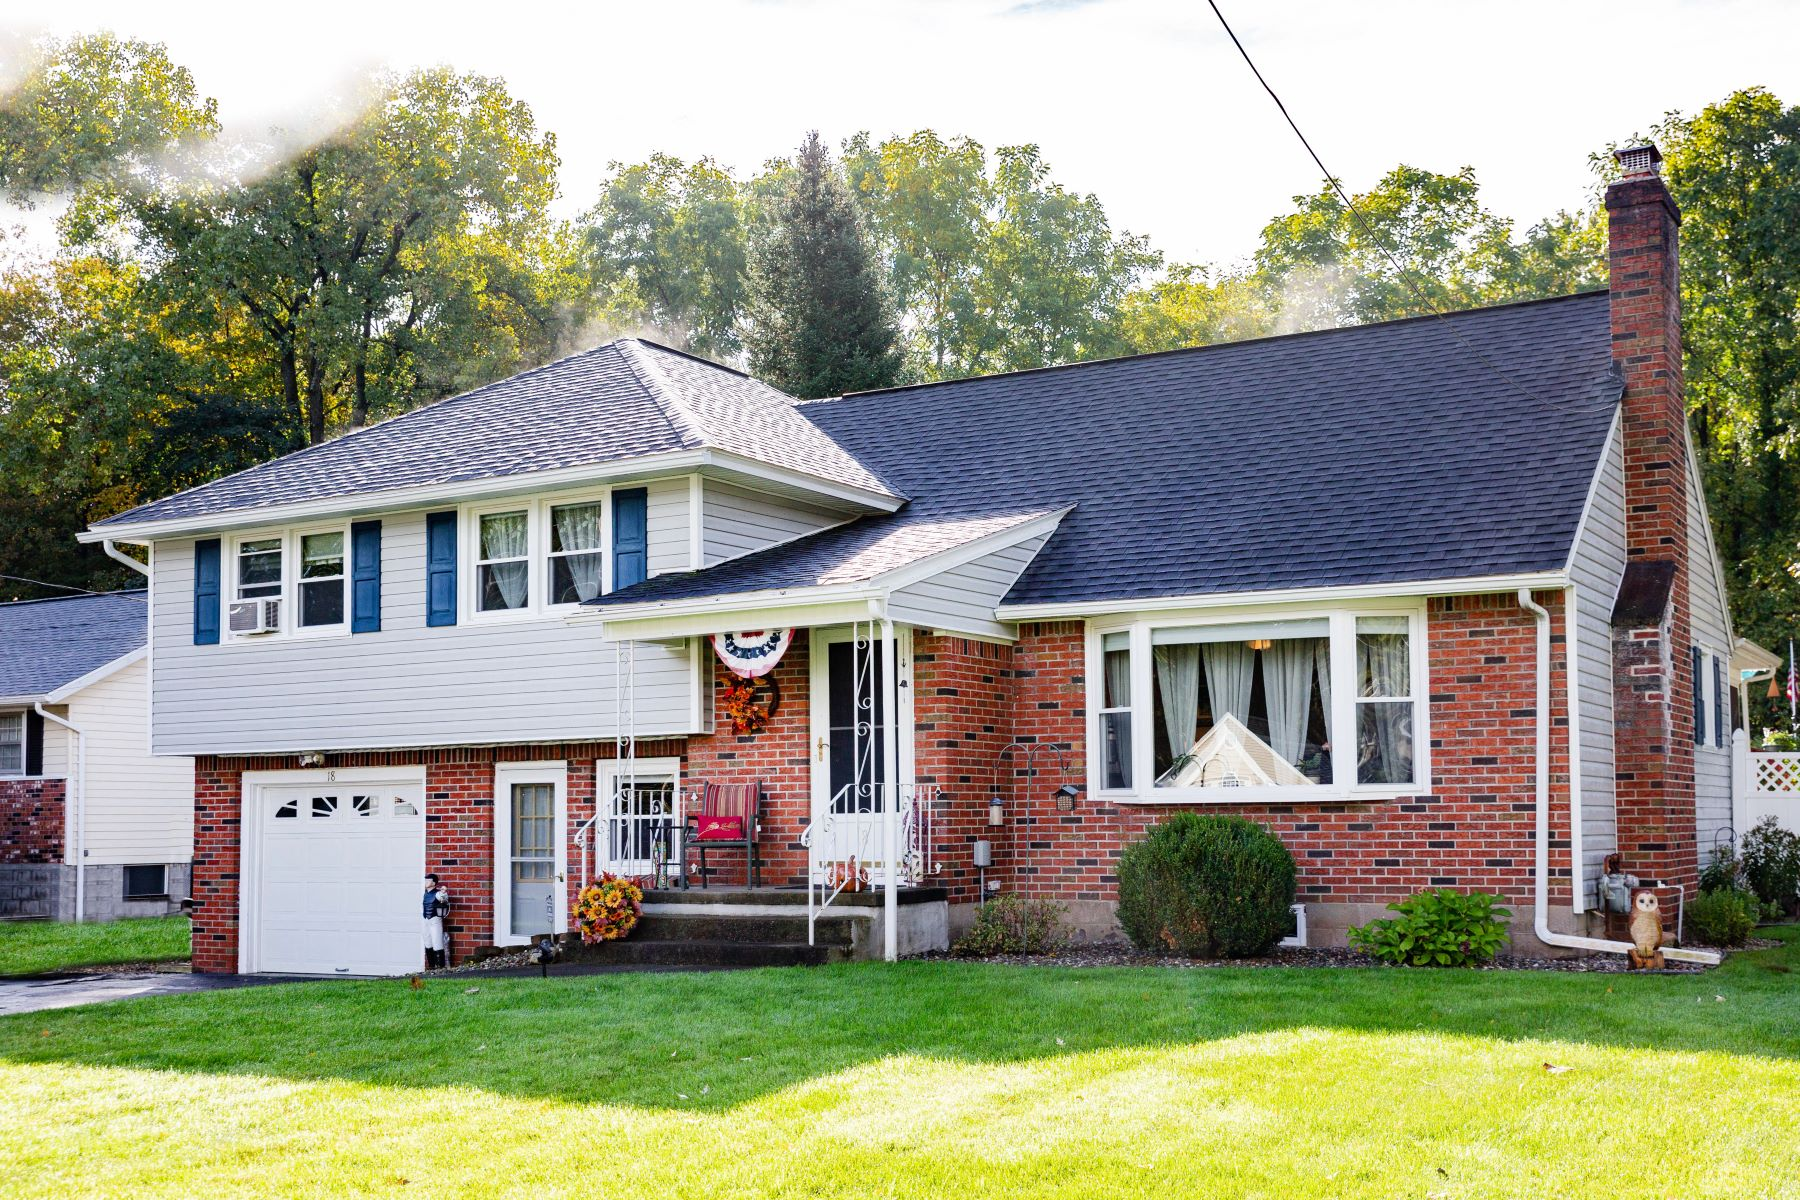 Single Family Homes for Sale at Spacious Updated Split Level 18 Dyer Dr Clifton Park, New York 12065 United States